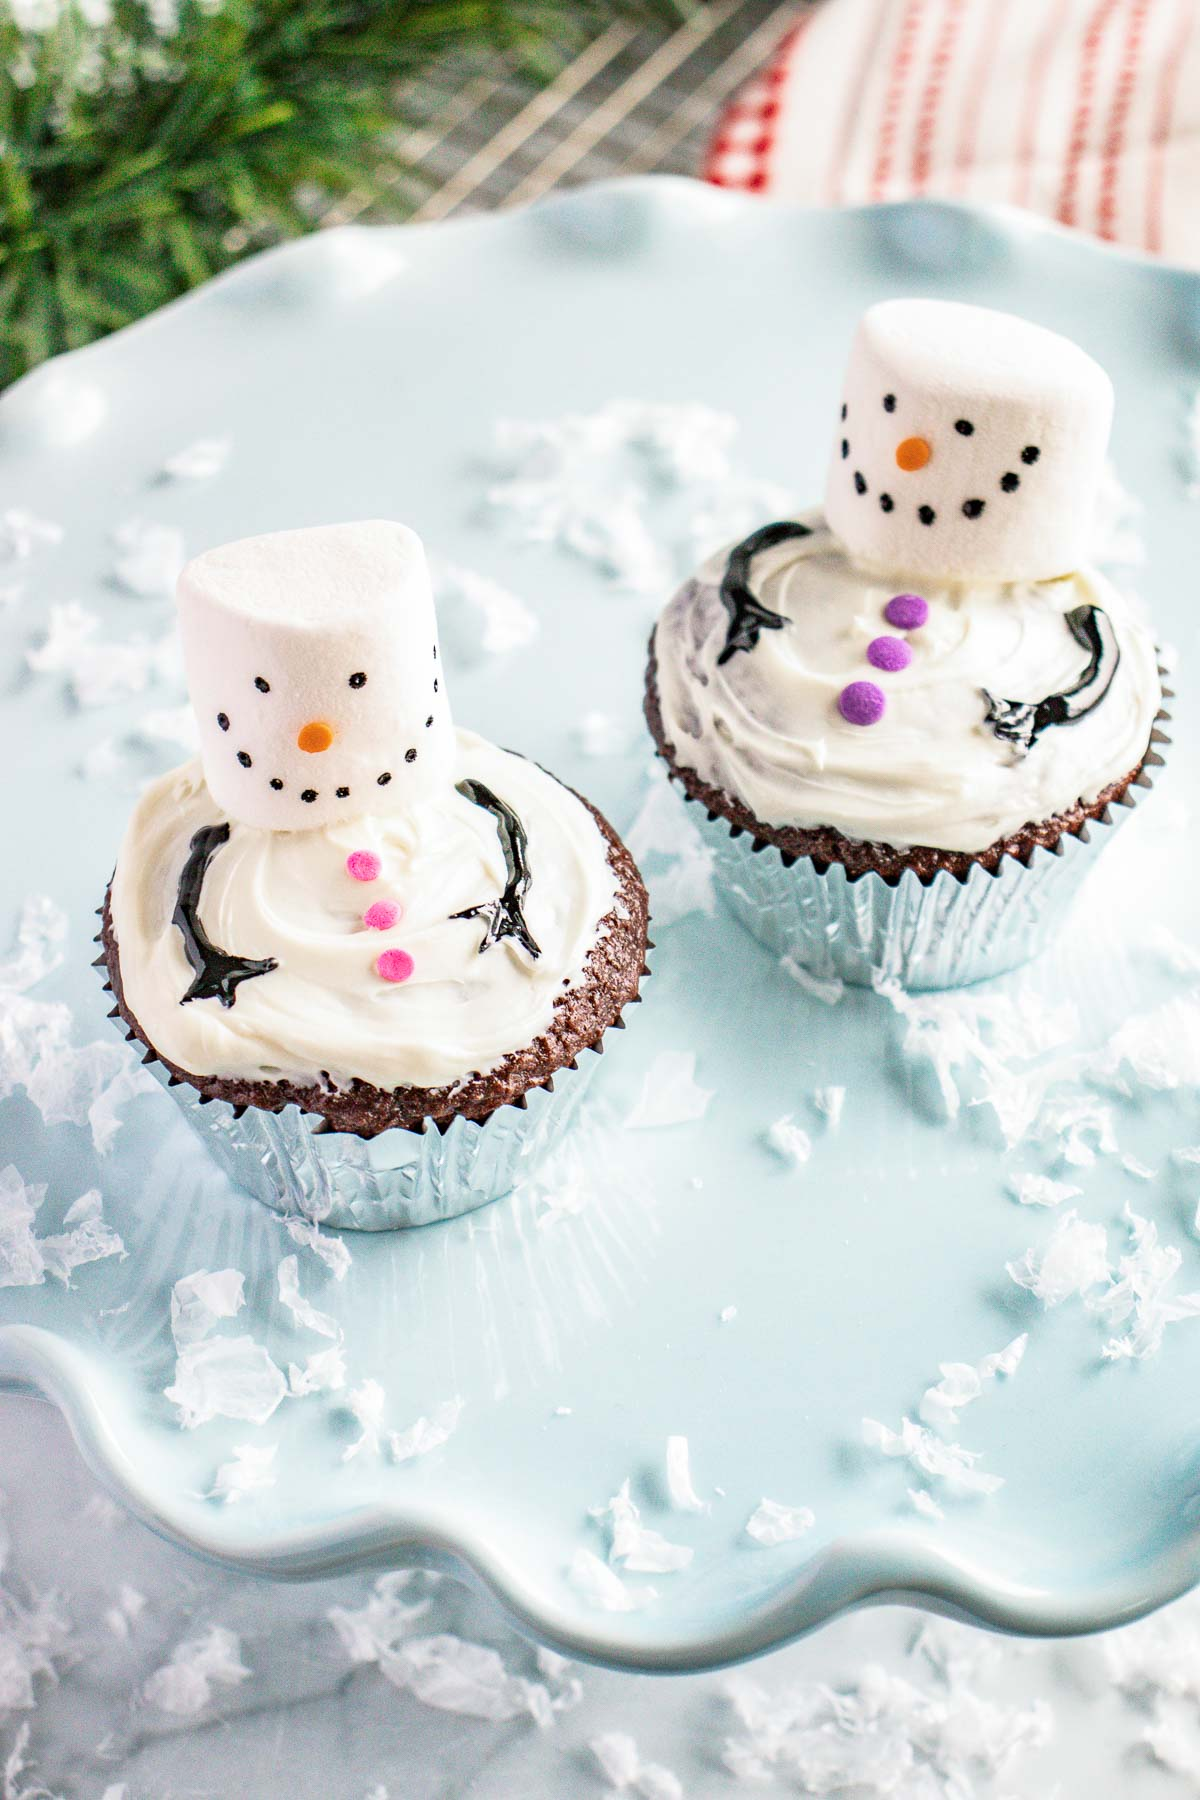 2 snowman cupcakes on a cake stand